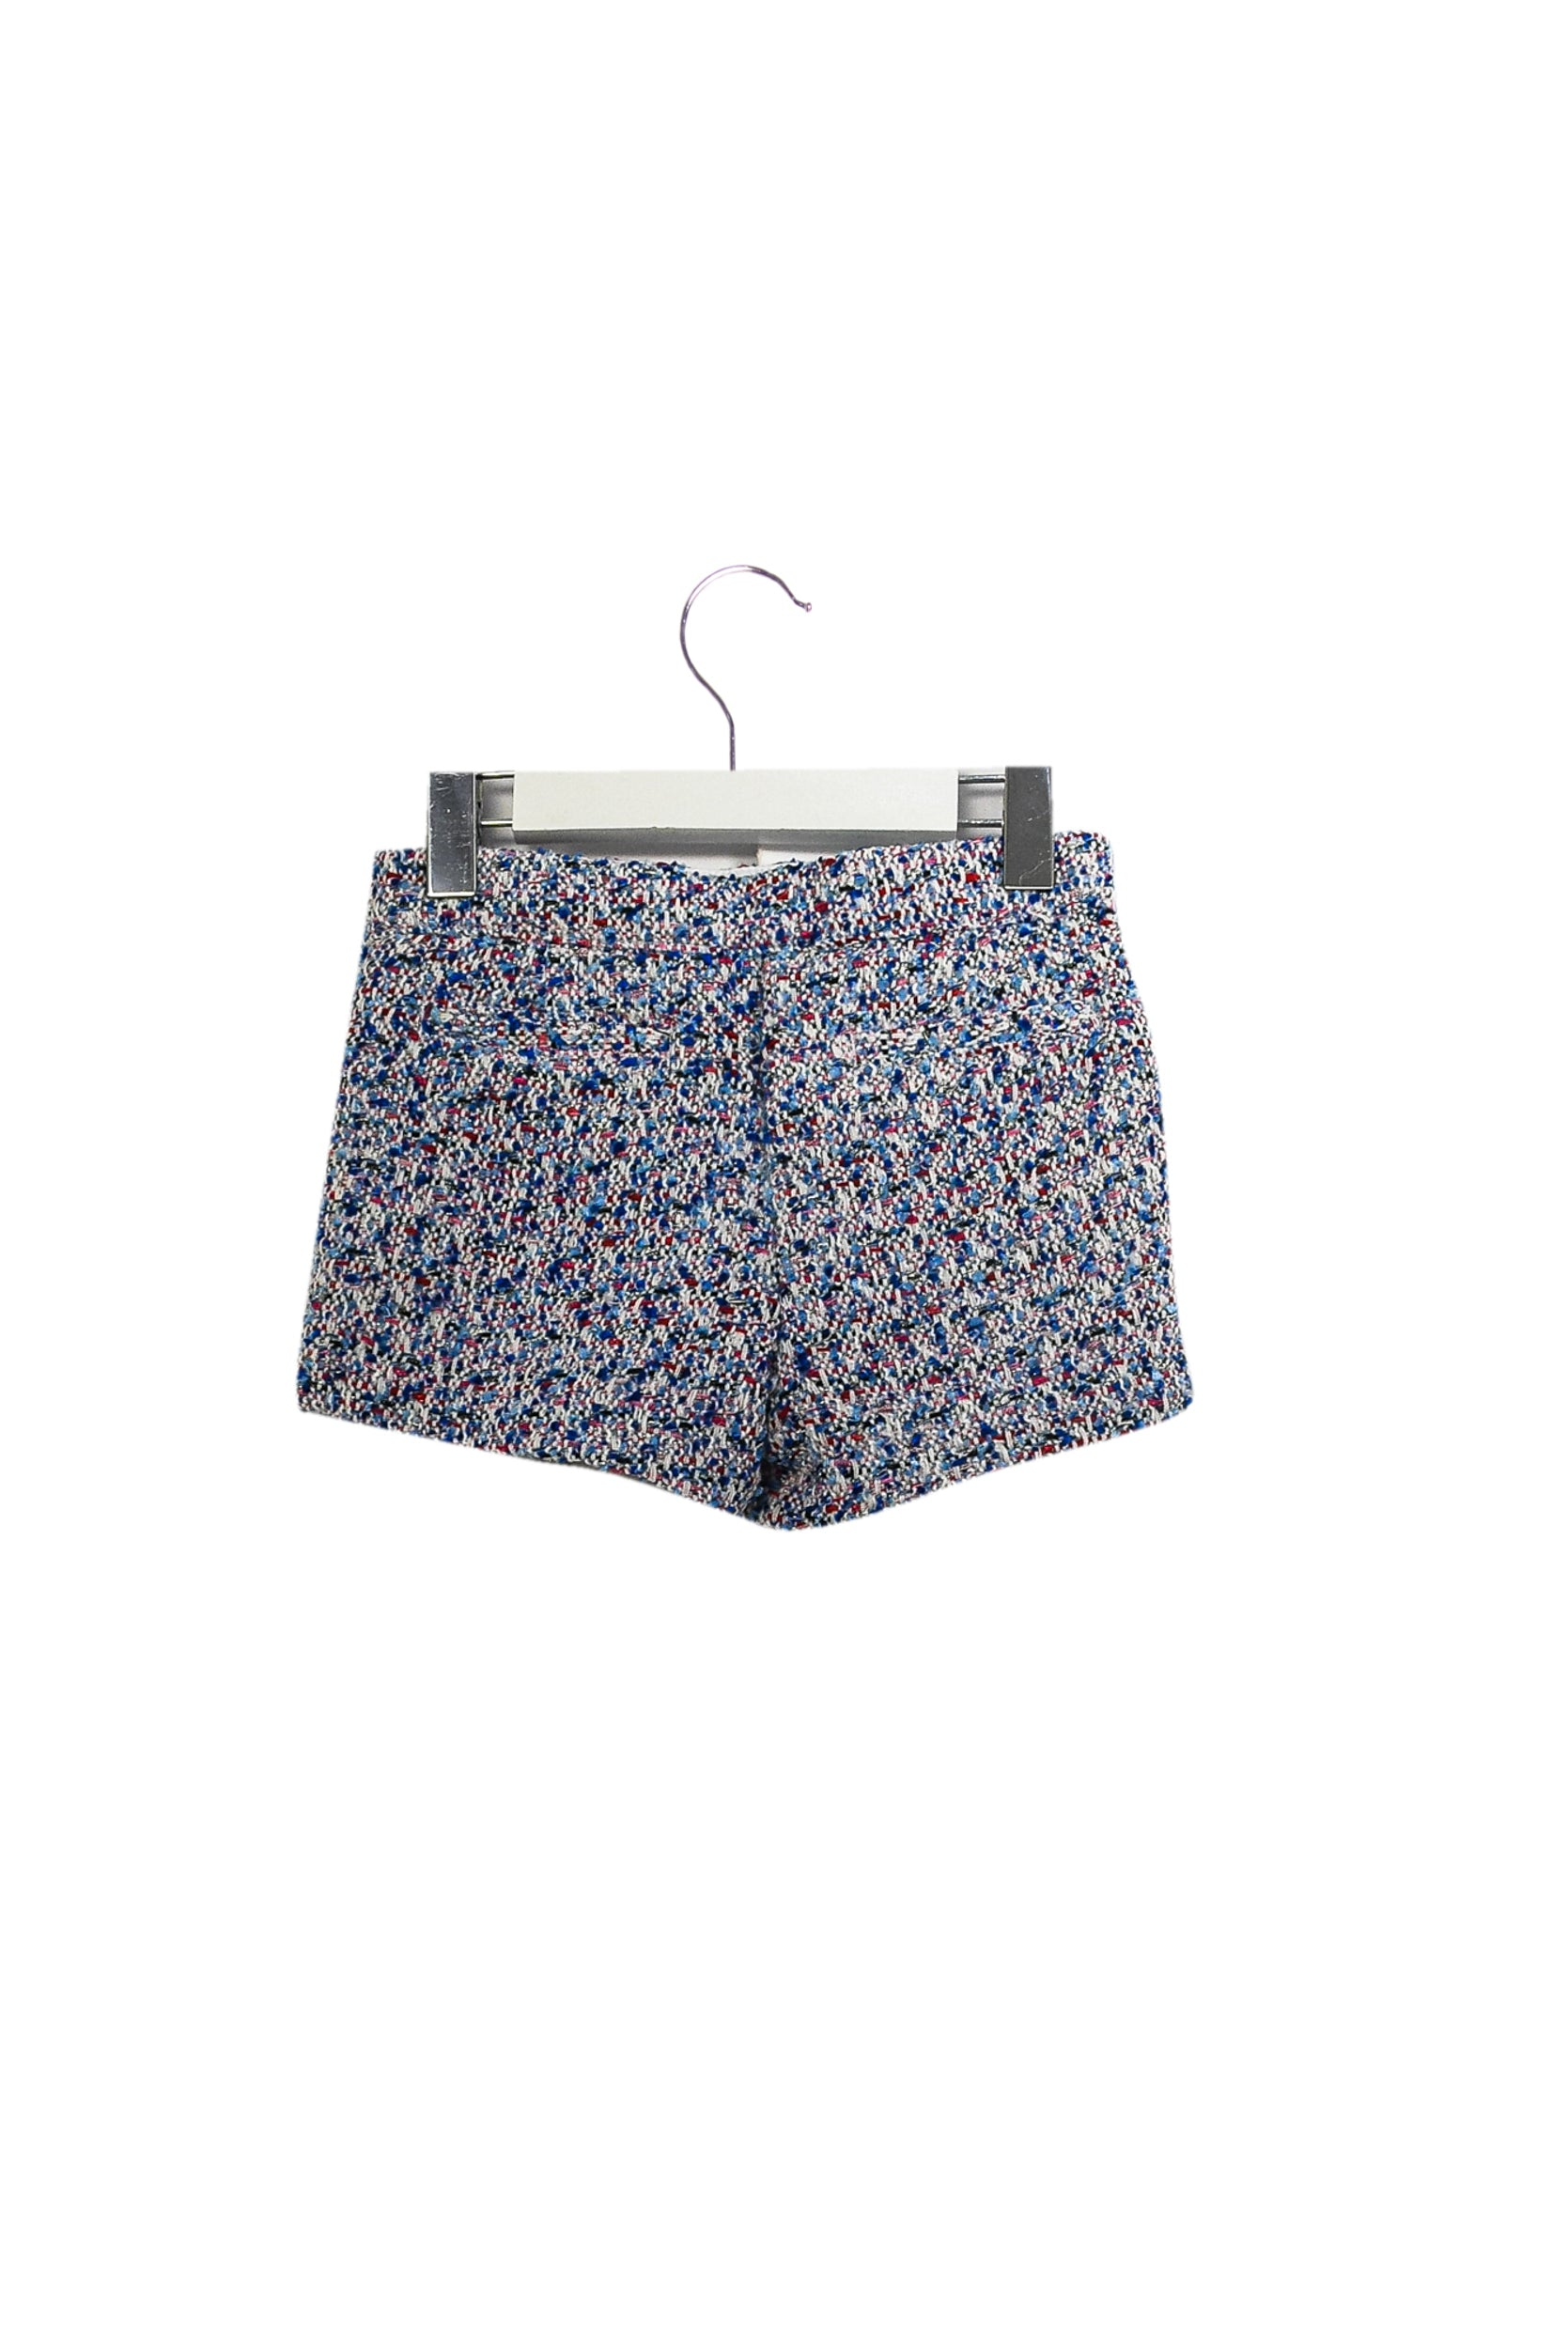 Shorts 2T at Retykle